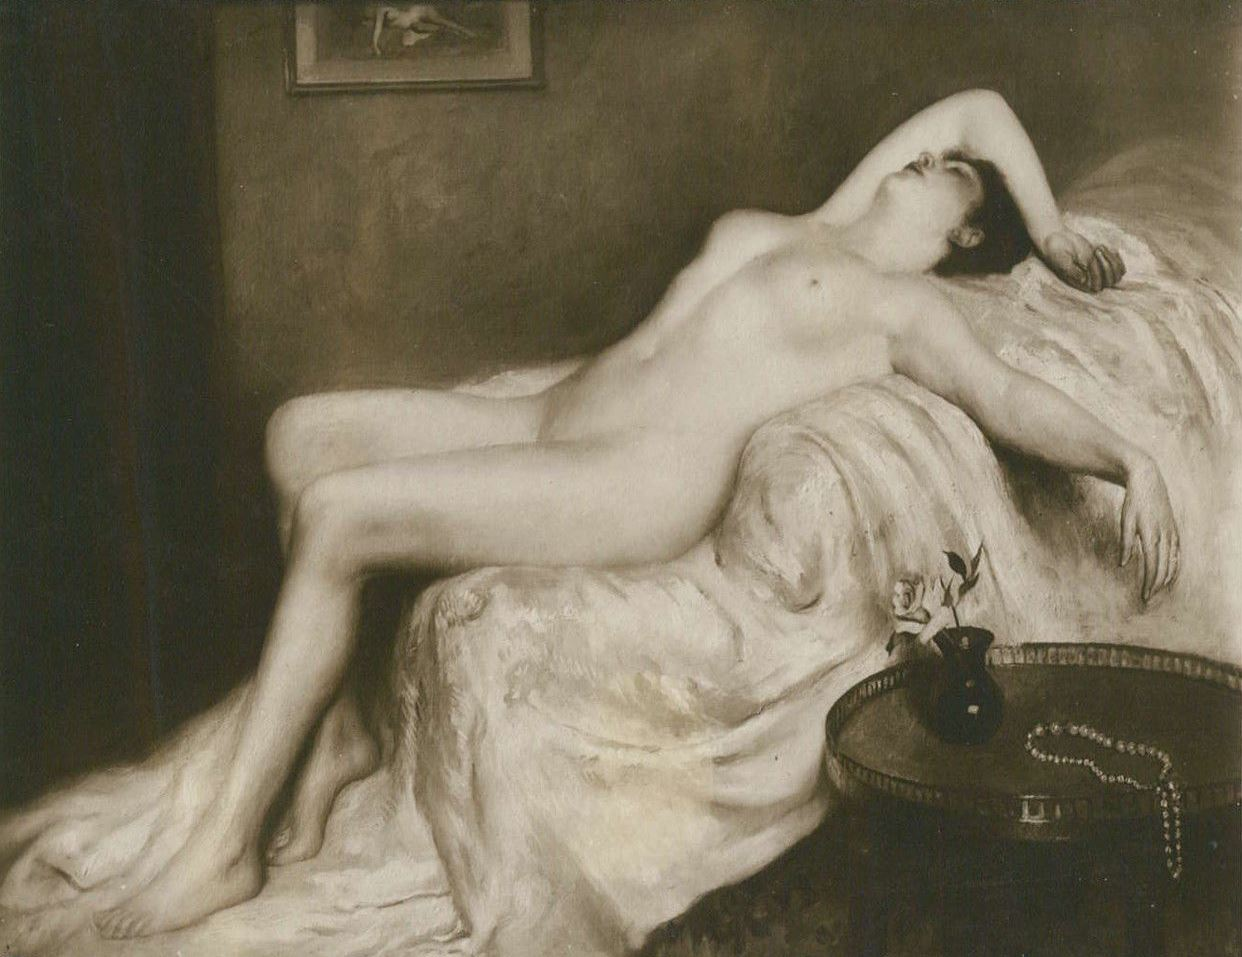 Alfred Noyer Studio.  Galand. Erotic nude sleeping woman on a divan. 1910s postcard Salon de Paris